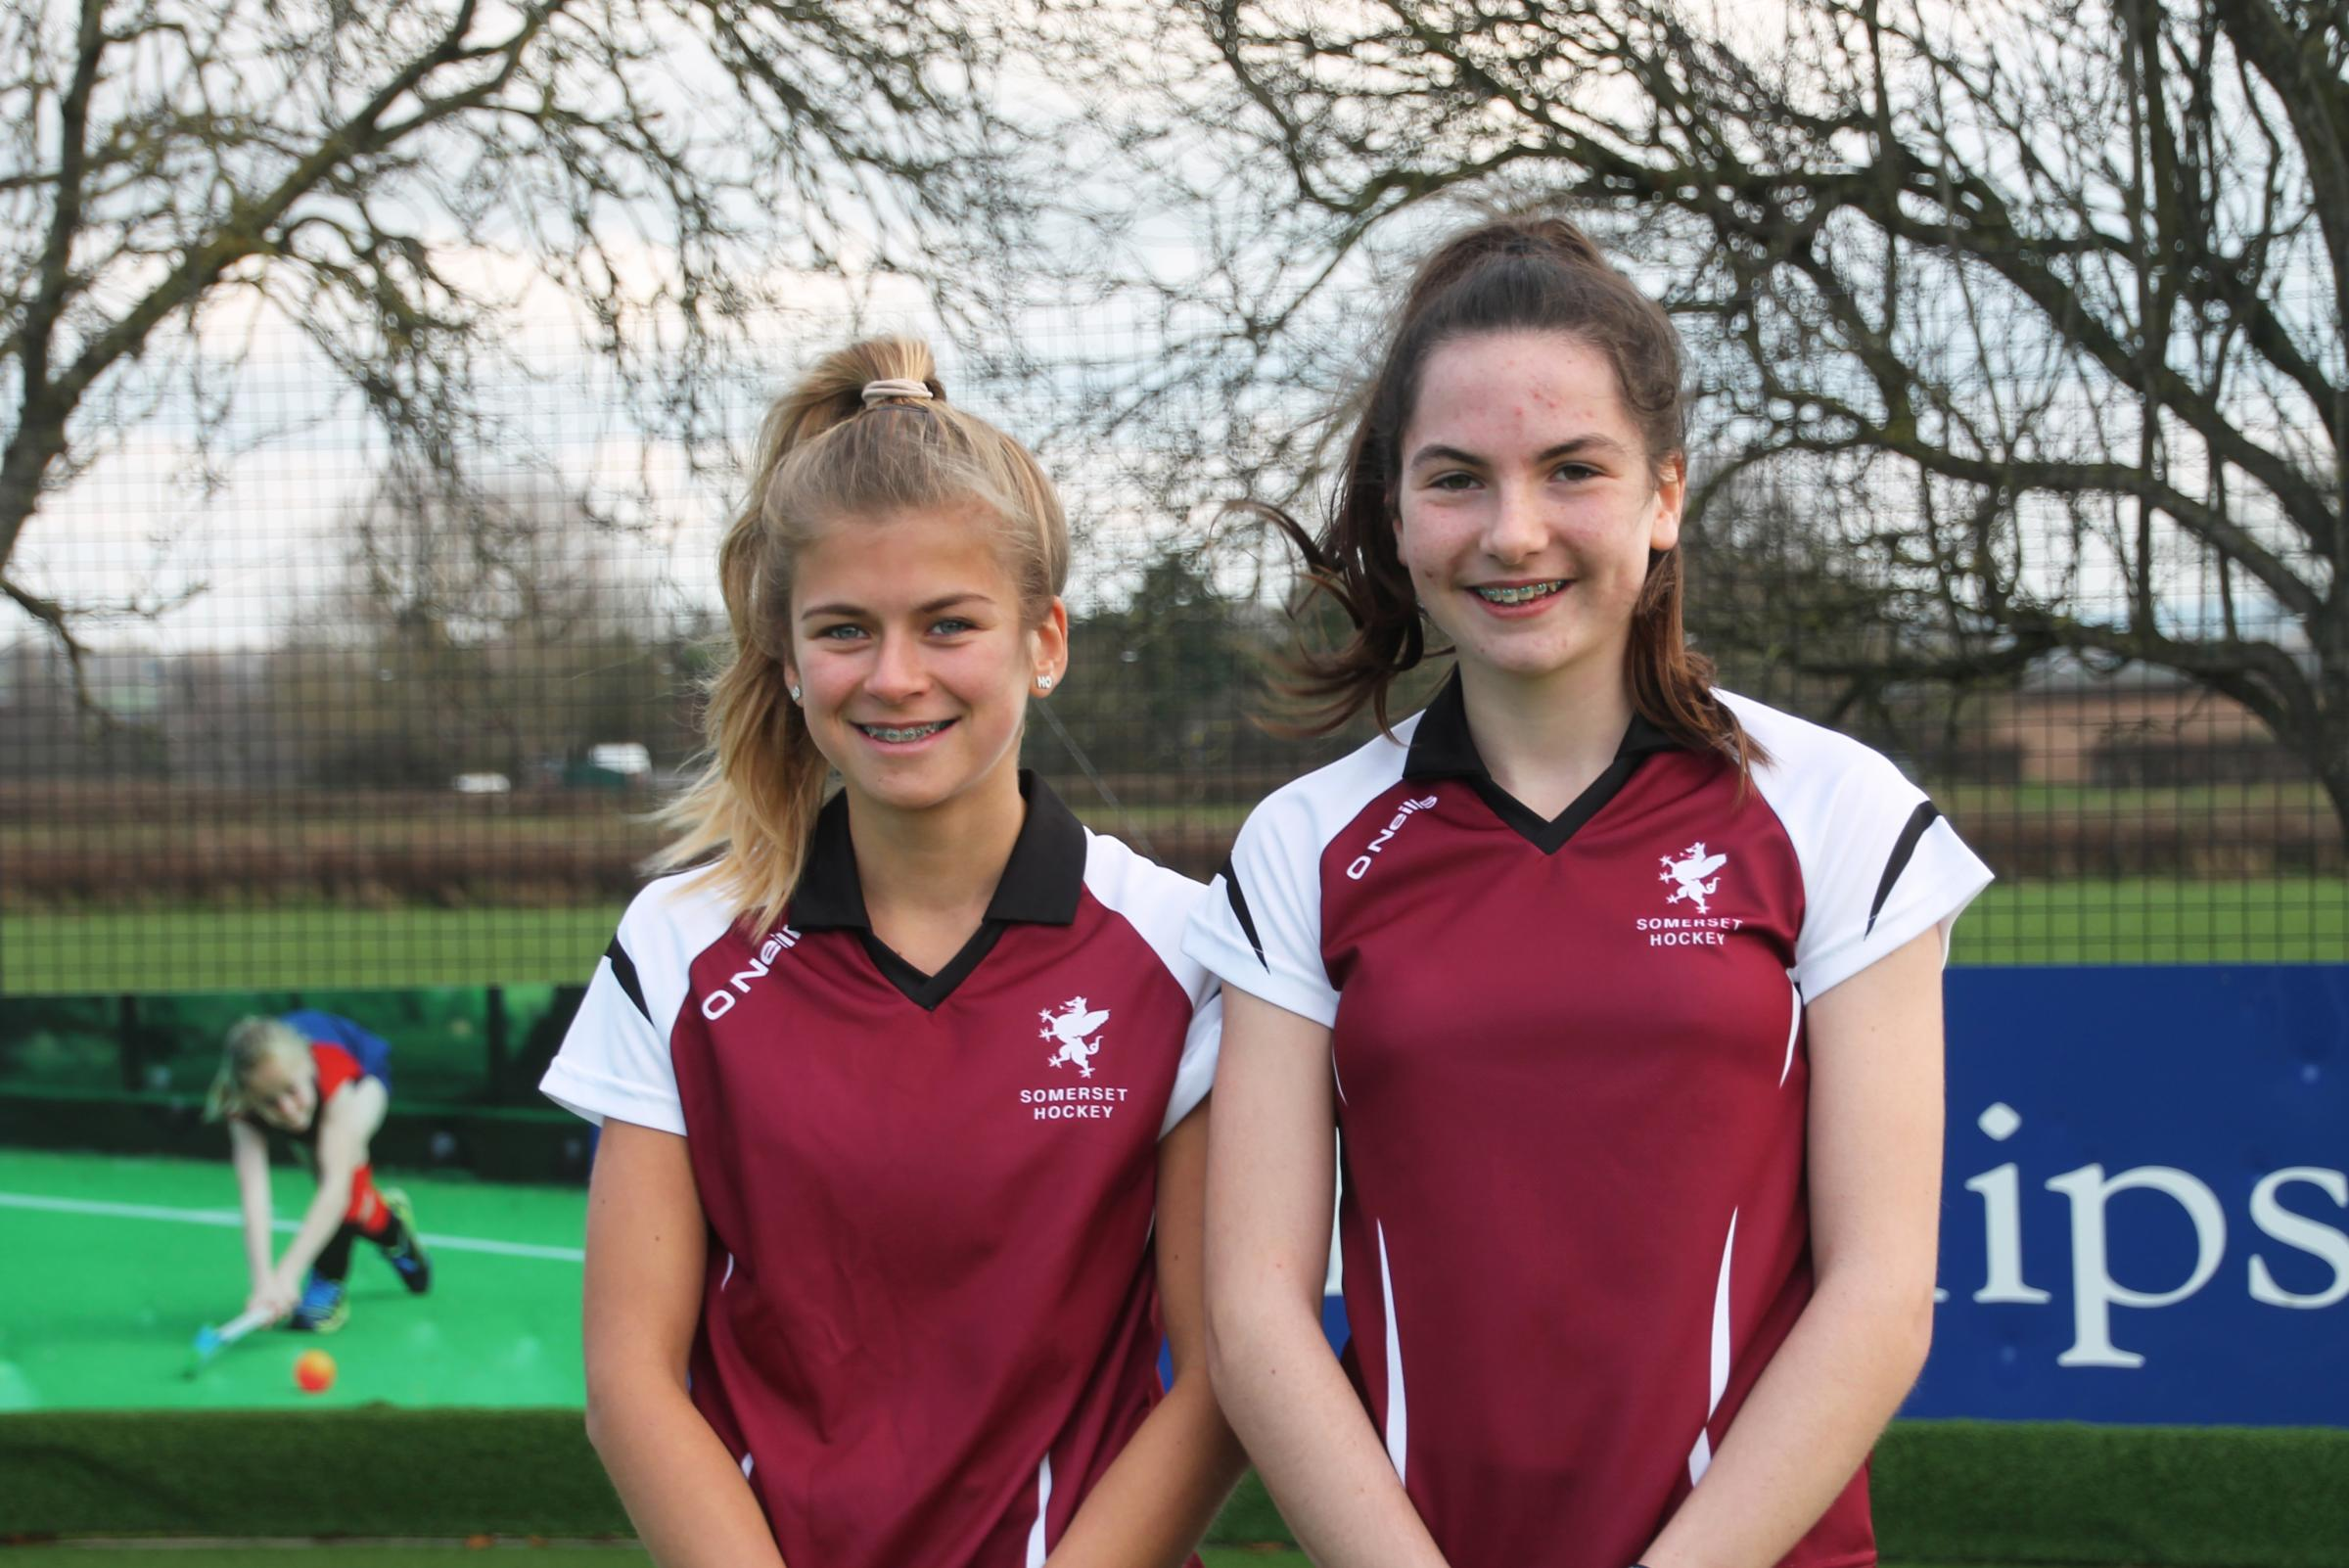 RISING STARS: Hockey players Harriet Wrelton and Emily Ogle